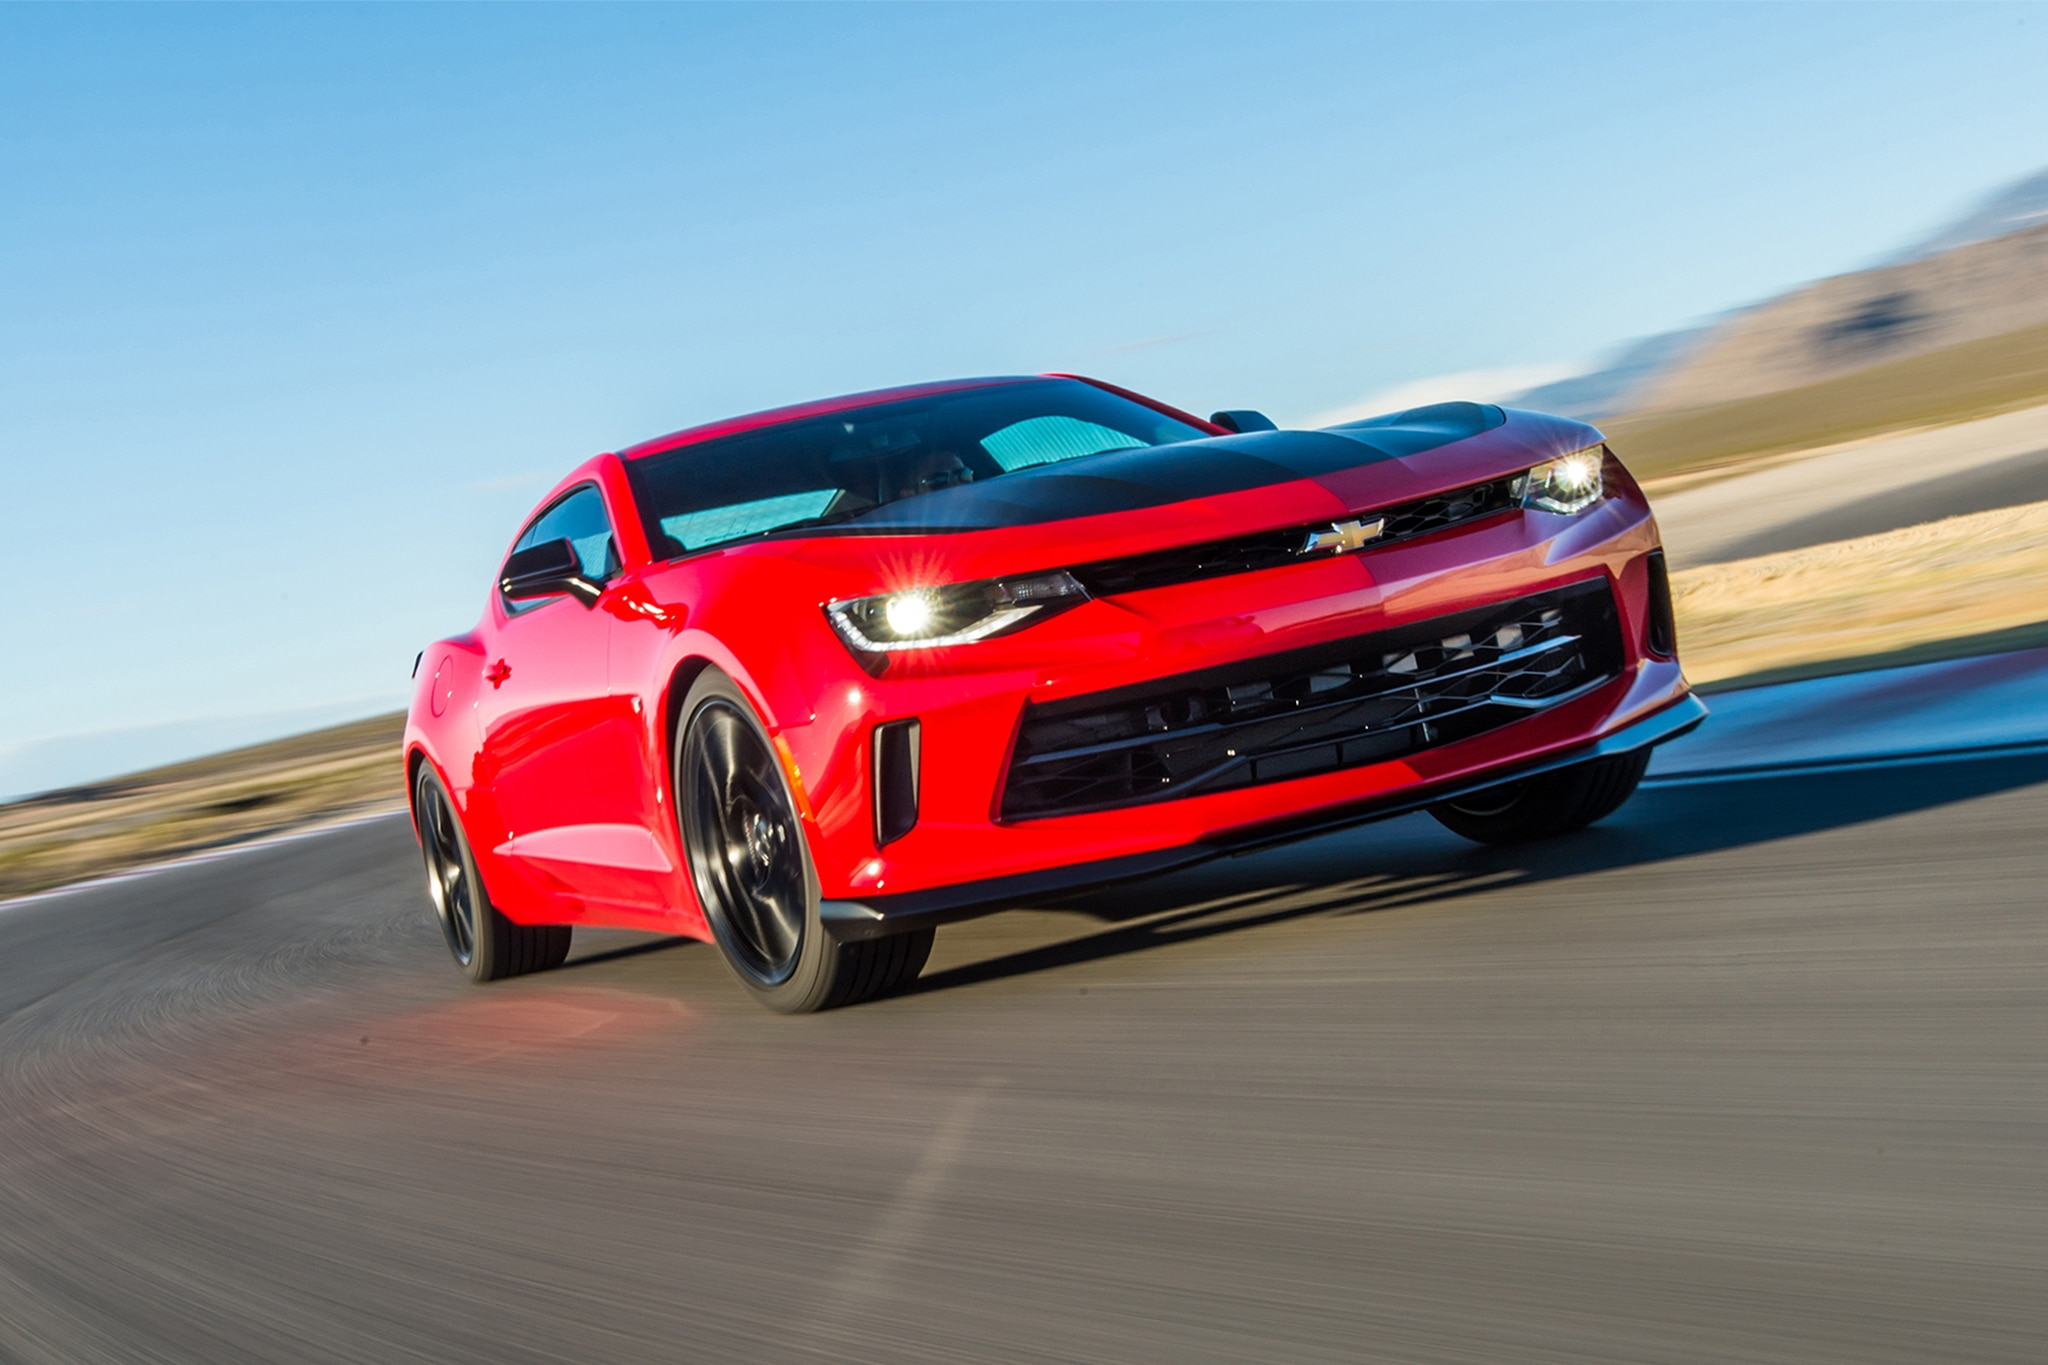 2017 chevrolet camaro v 6 1le first drive review automobile magazine2017 chevrolet camaro v 6 1le